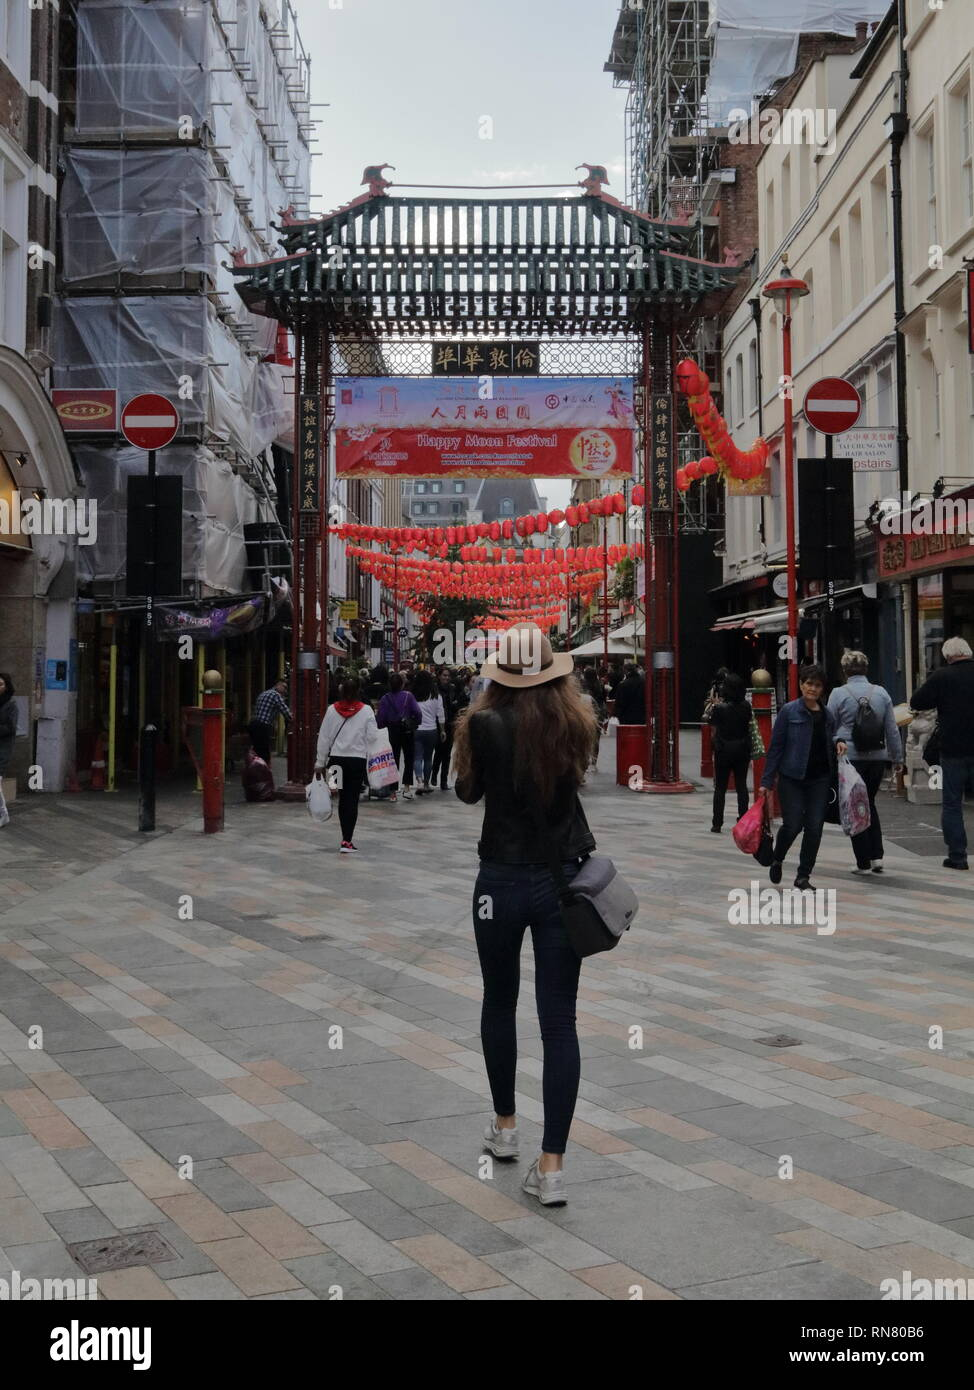 Girl taking a picture in Chinatown London central. Stock Photo